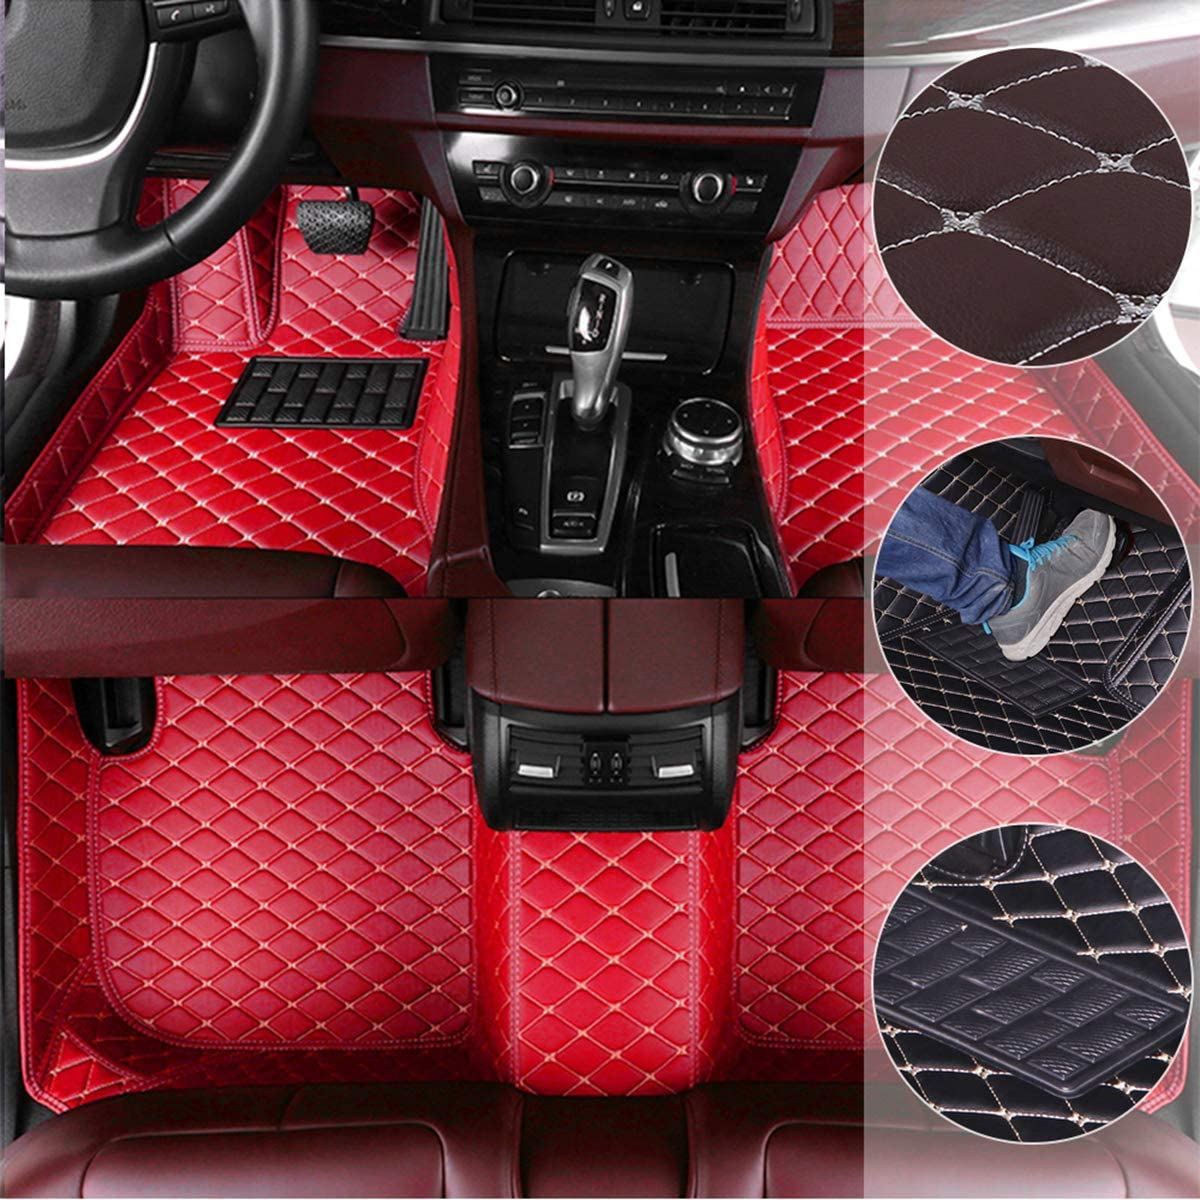 ytbmhhuoupx Car Floor Mats for Lexus is-C 2009-2011 PU Leather mat Front+Rear Full Coverage Liner Waterpoof Non-Slip Left Drive Red